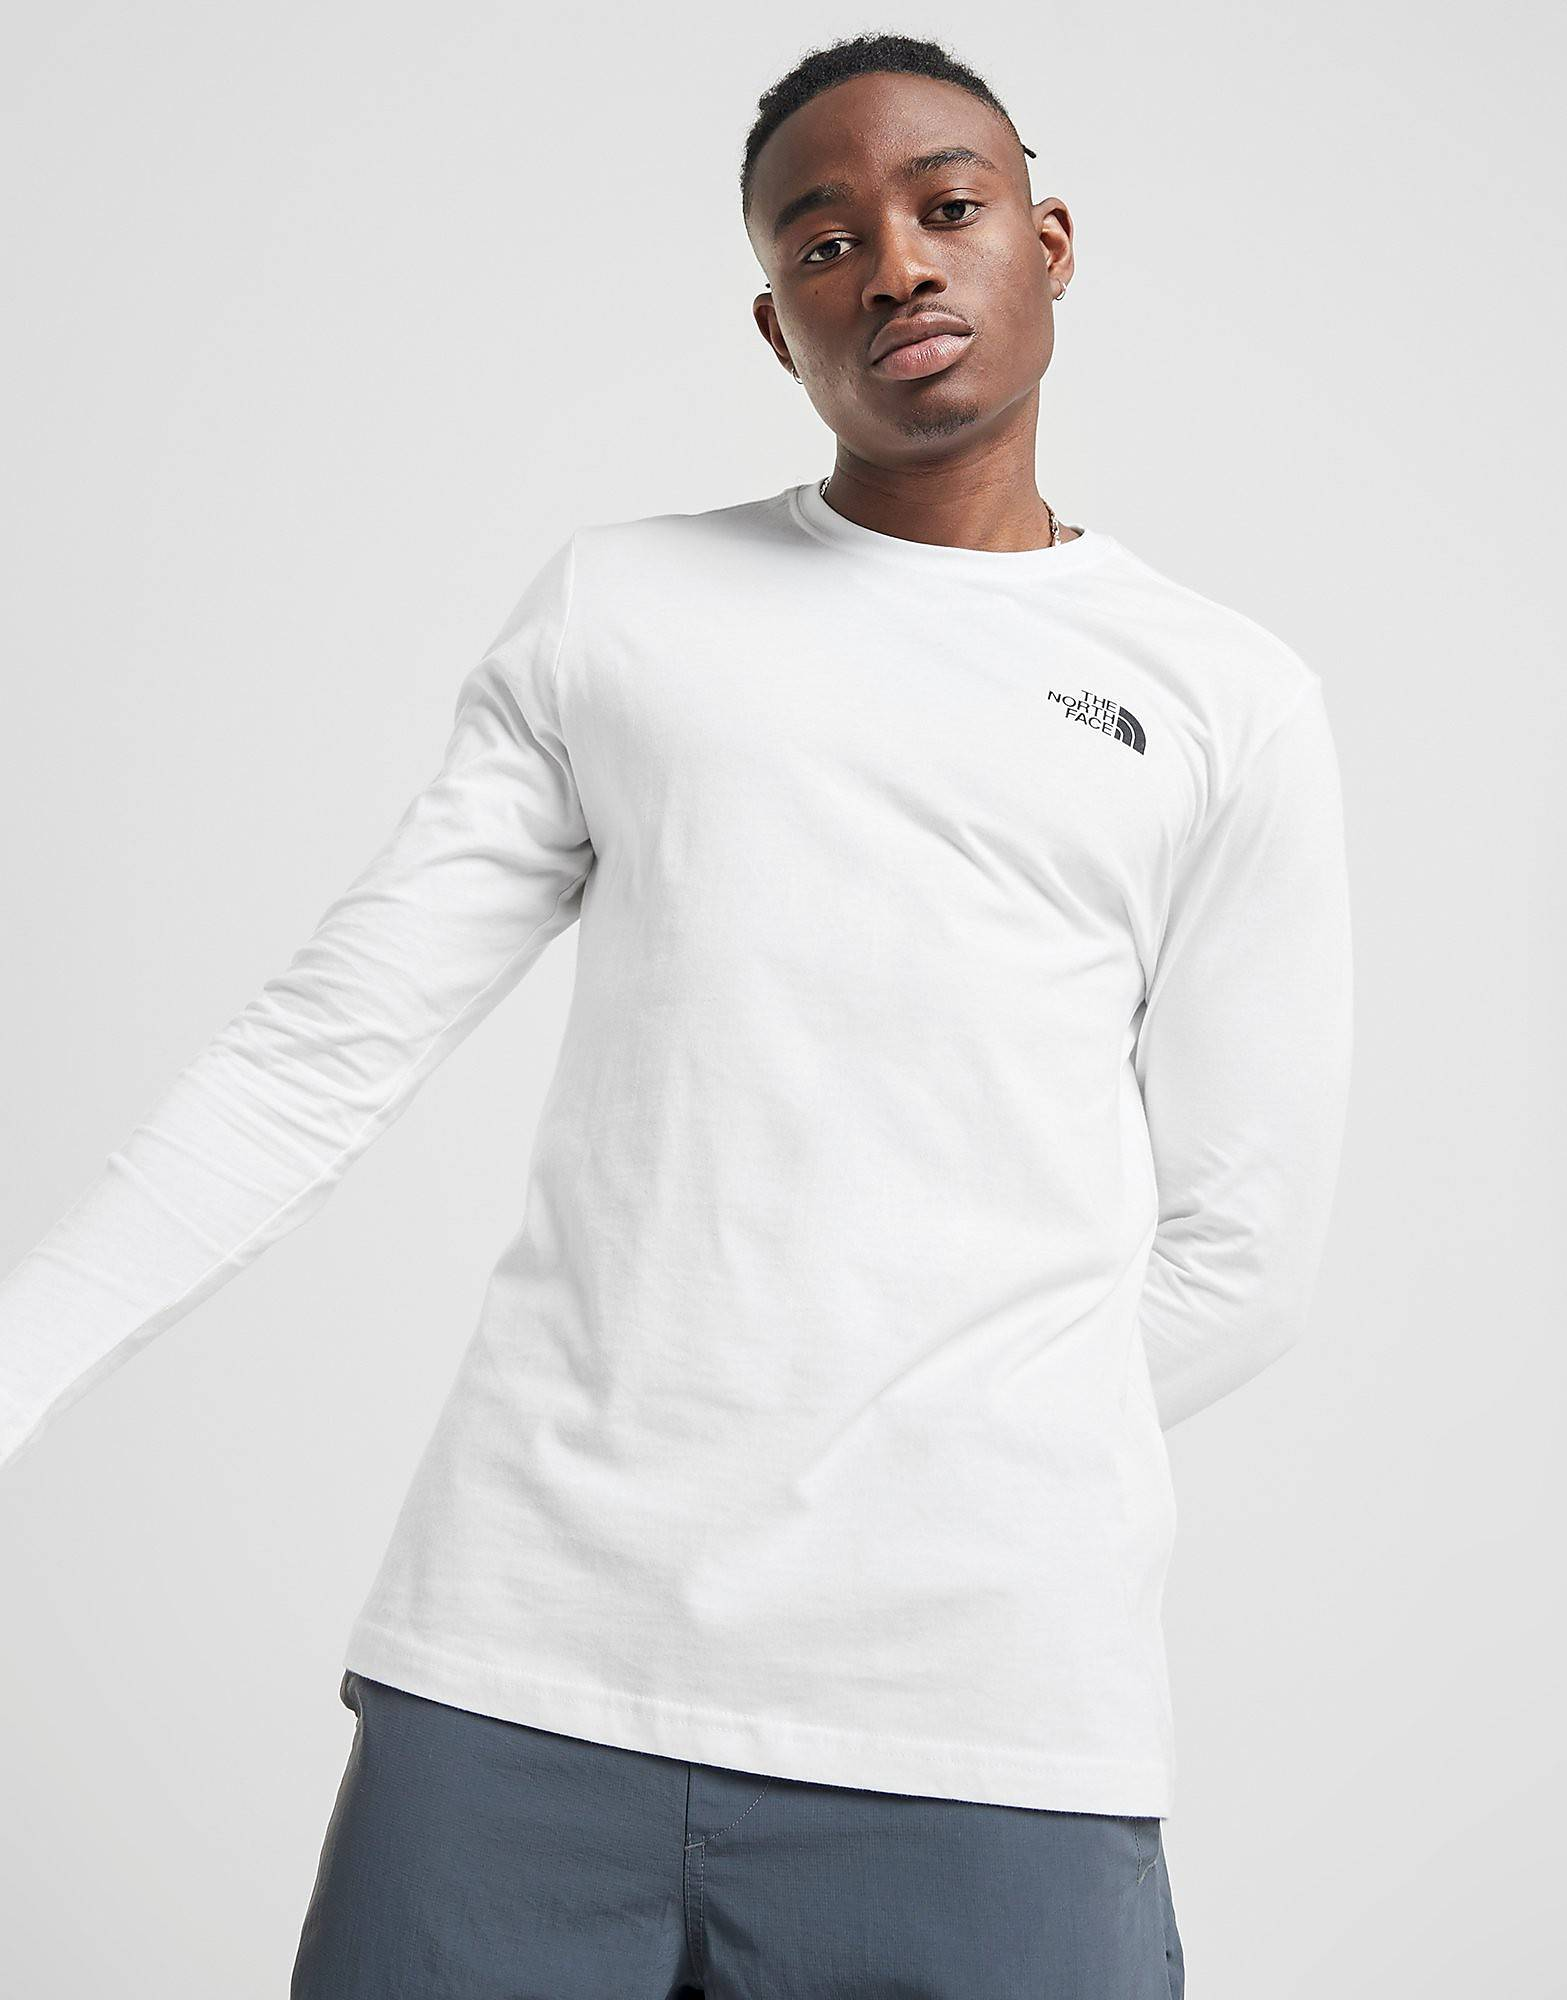 Image of The North Face Long Sleeve All Over Print Redbox T-Shirt - Only at JD - Mens, Valkoinen